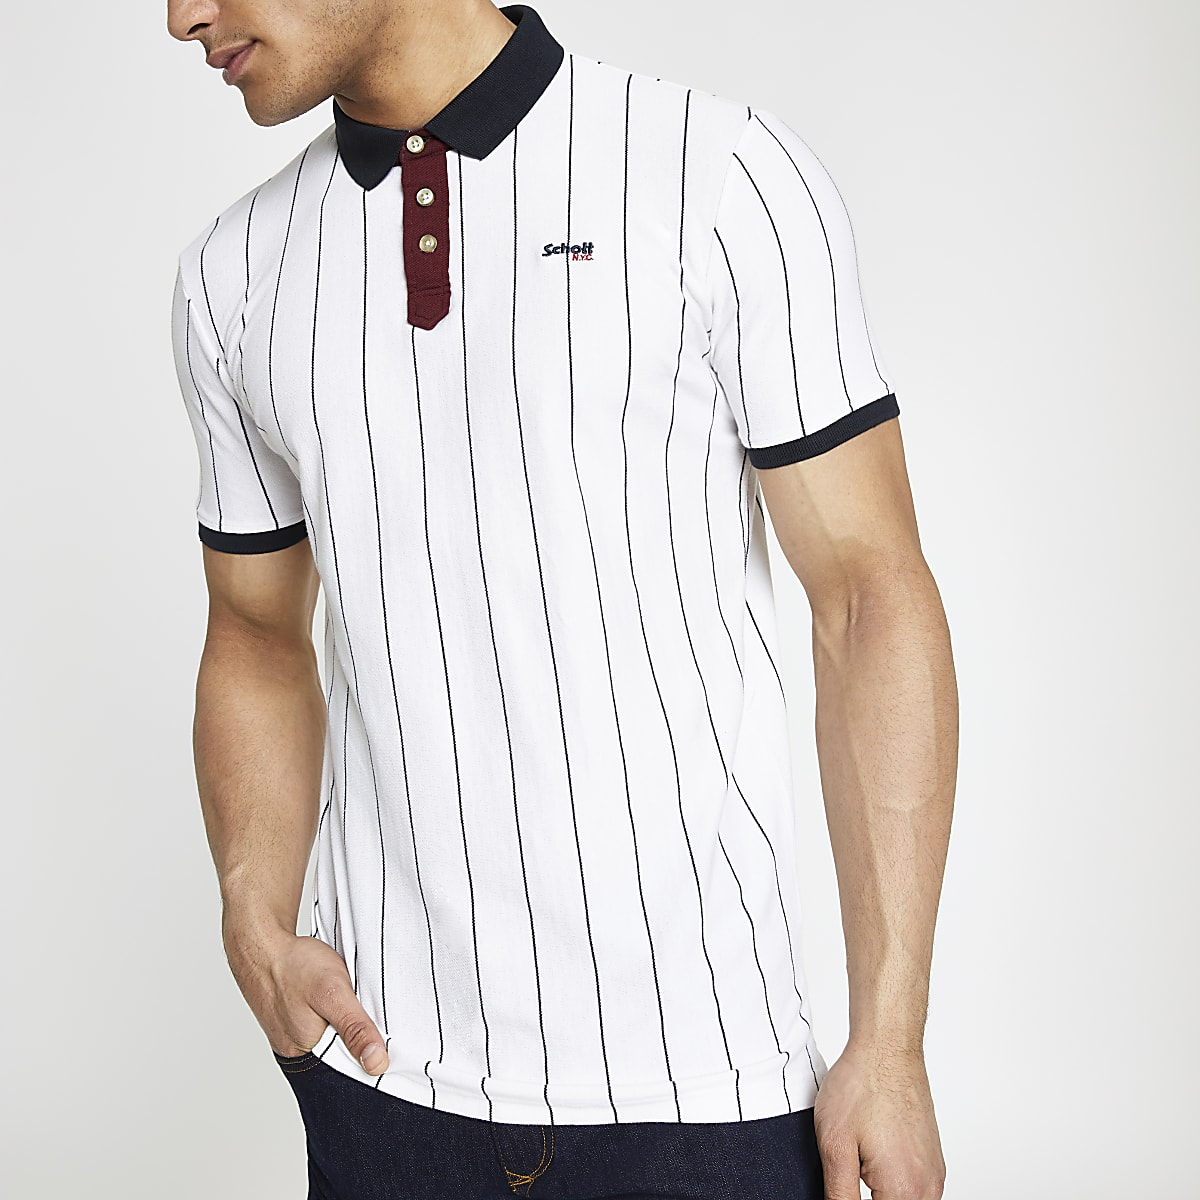 Schott white stripe polo shirt